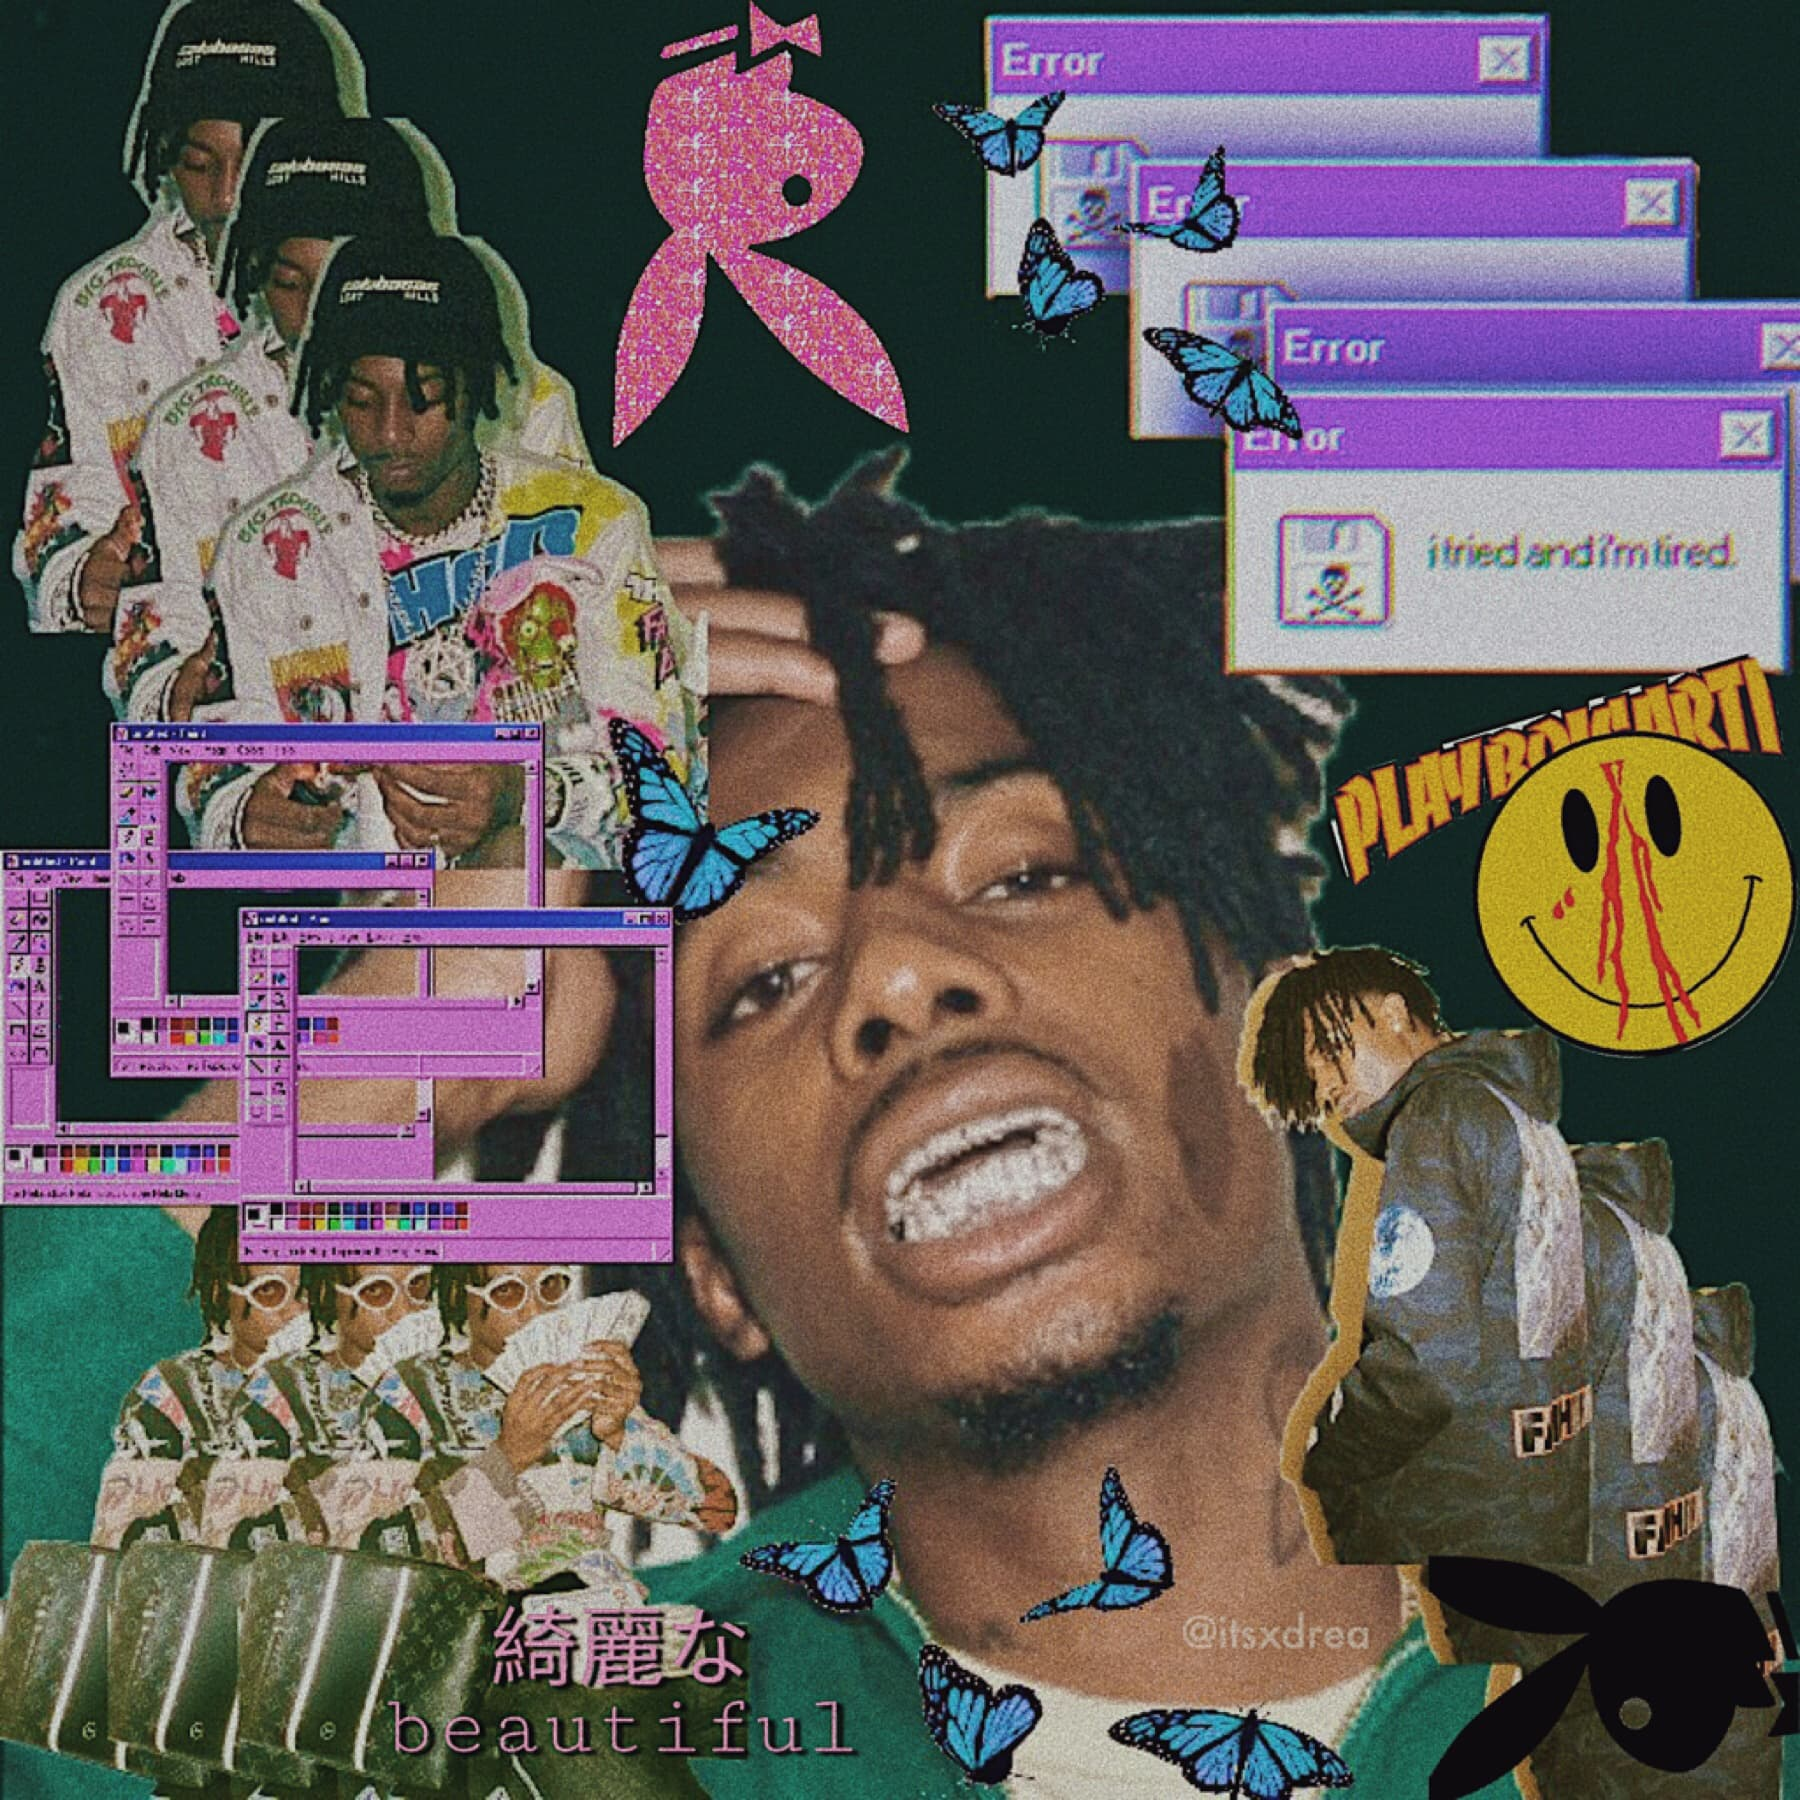 👾 • playboi carti • | inspired by pinterest | wow she posted another edit 😳 i kinda wanna do more edits of artists outside of kpop. just comment what you think? and your wish is my command :-)